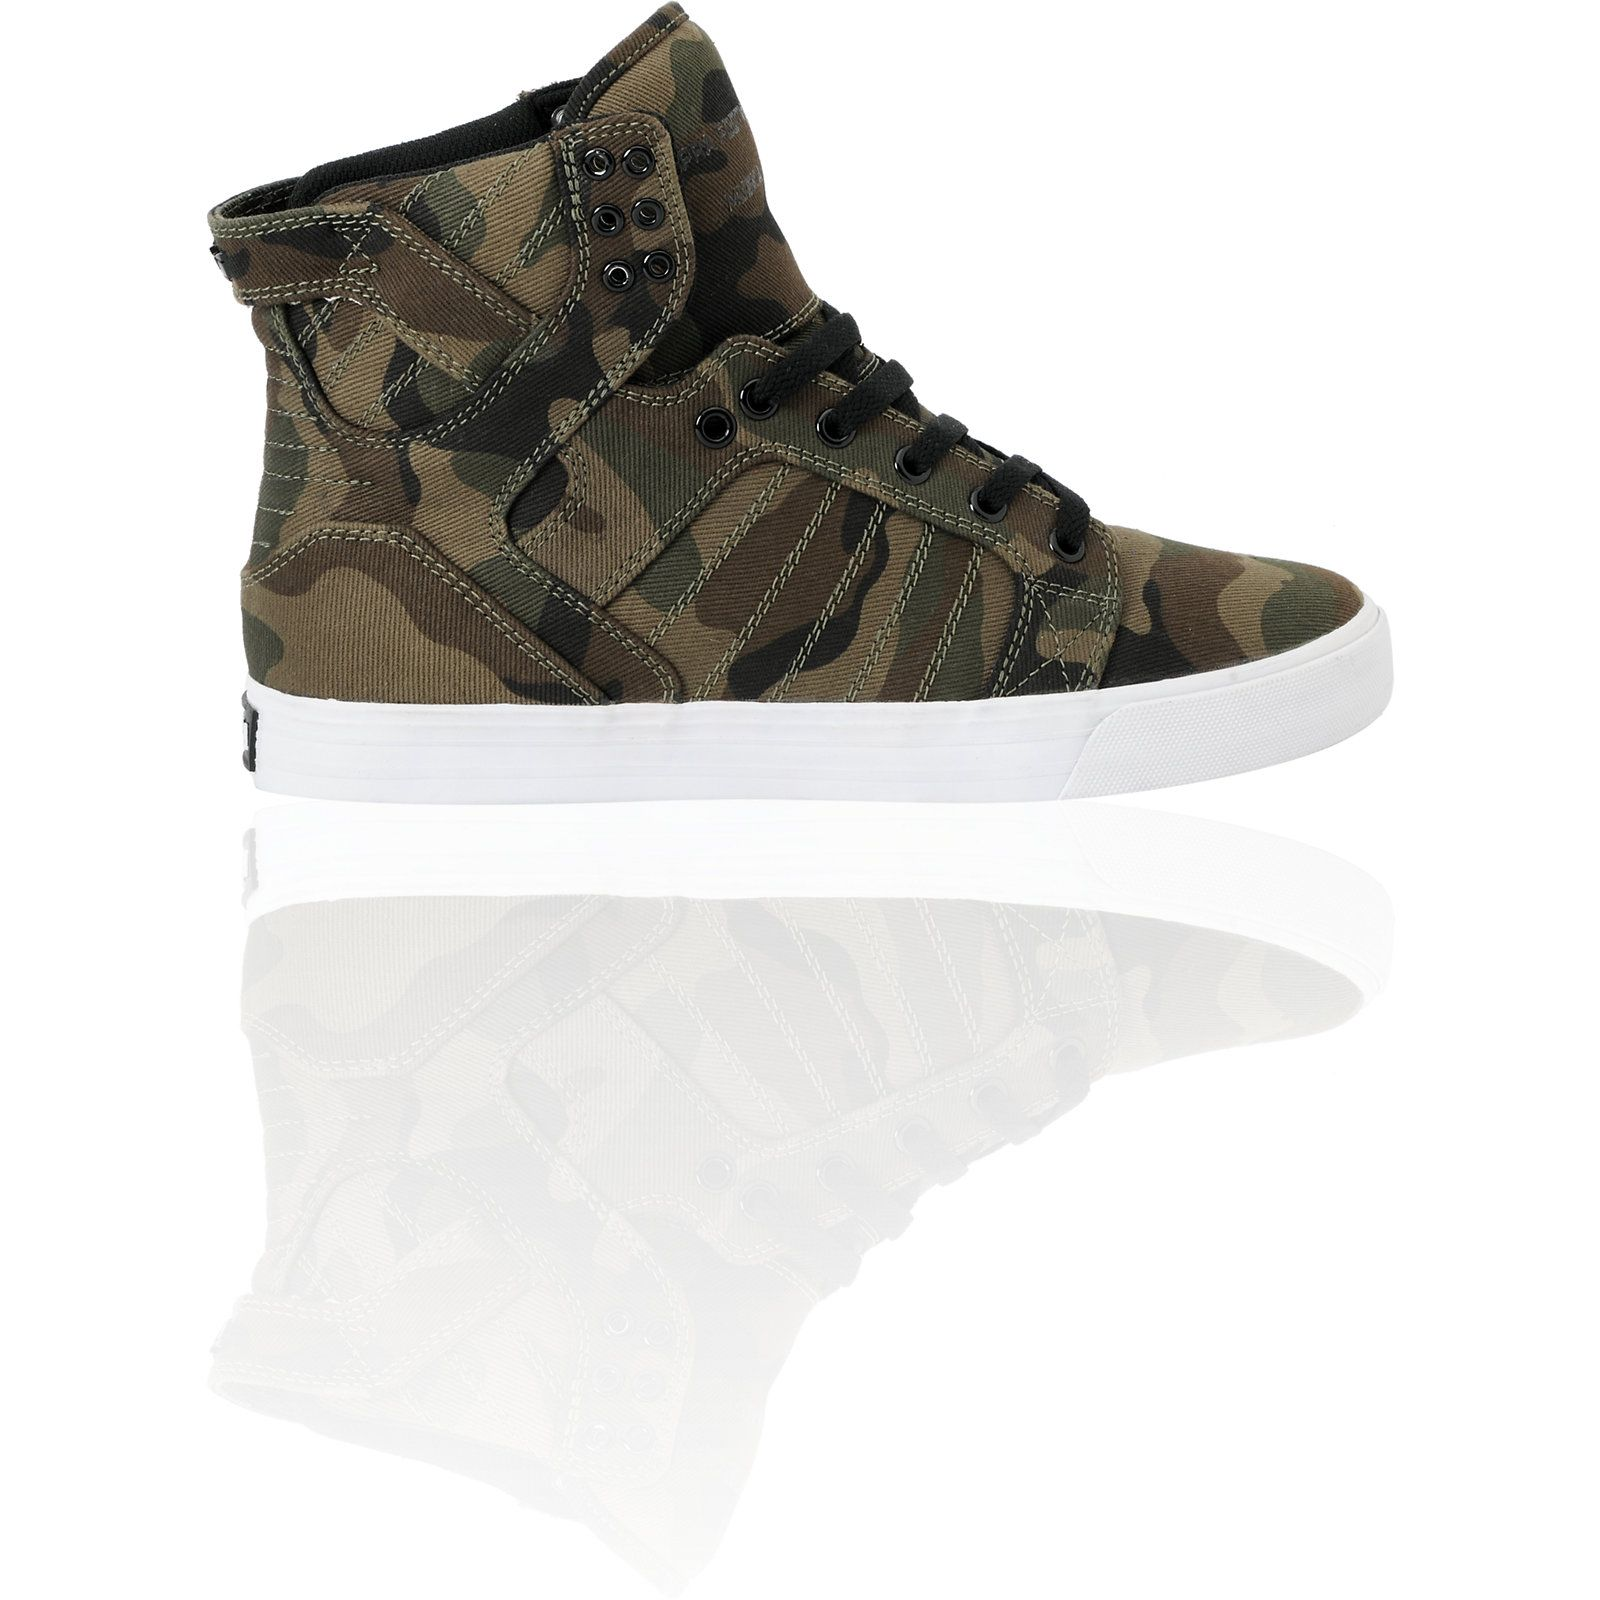 Supra Zumiez Exclusive Skytop Green Camo Skate Shoe 8 5 Sold Out Online a7d0c15cb39a